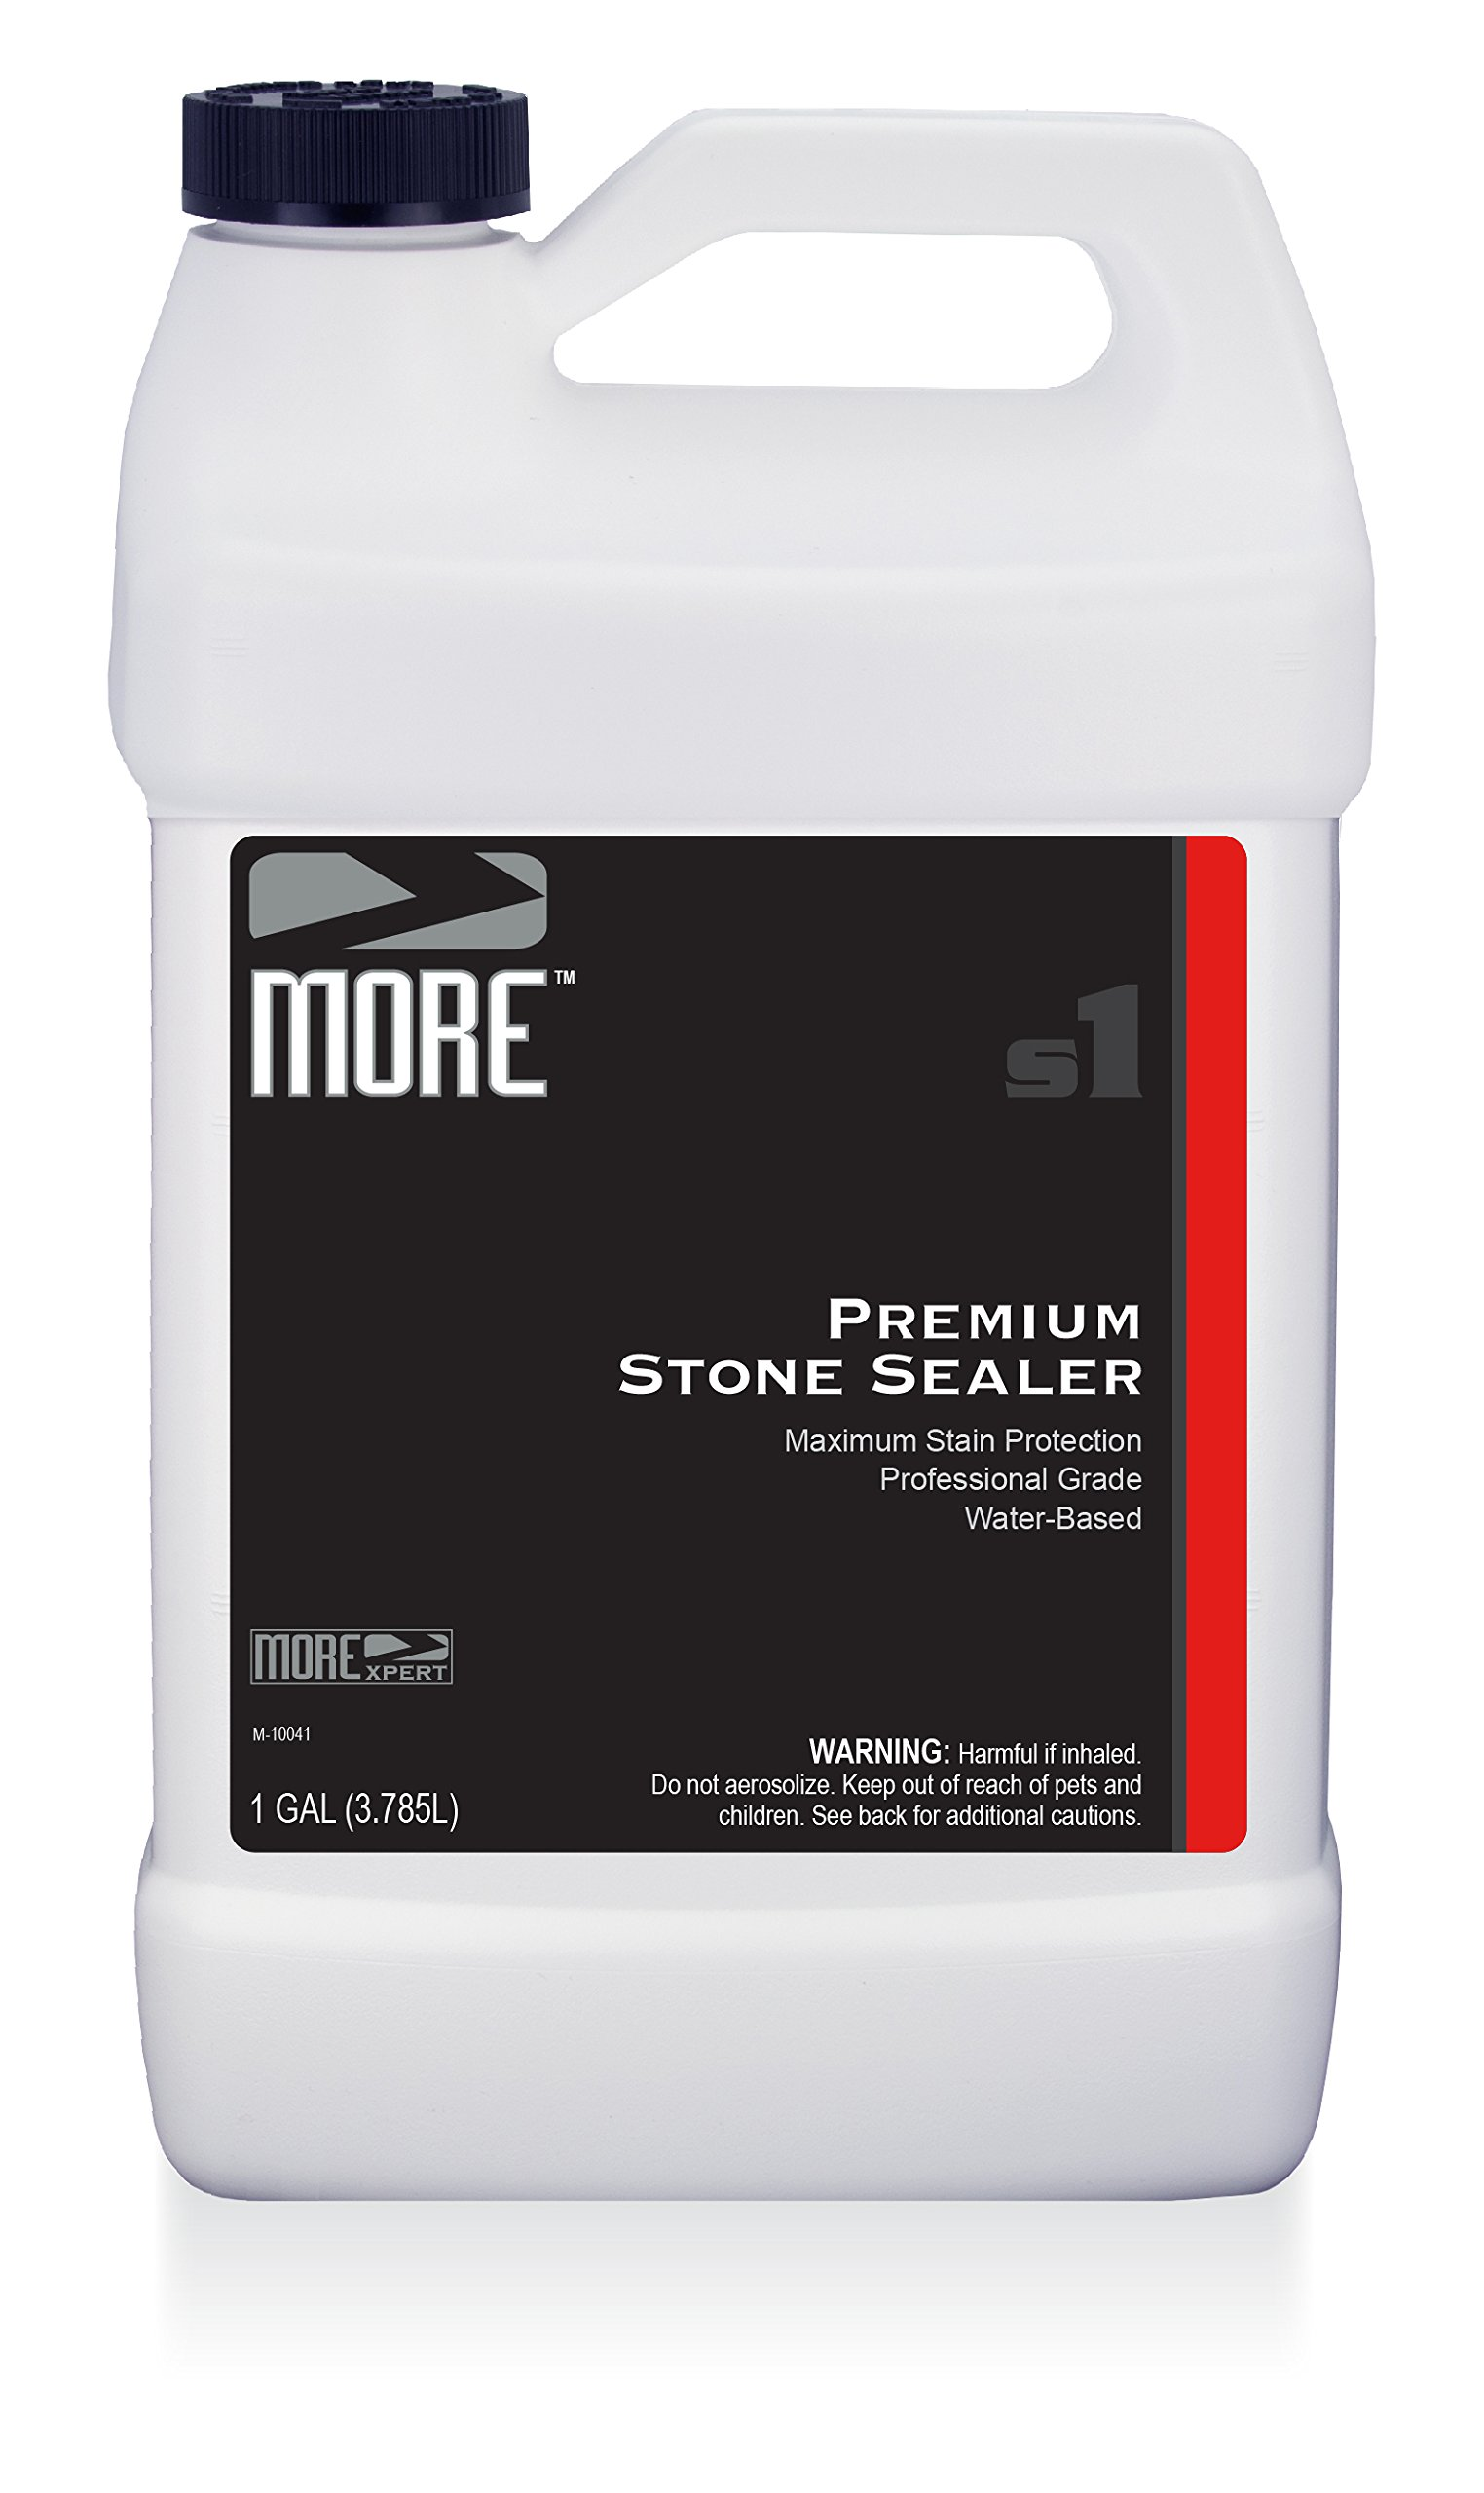 MORE Premium Stone Sealer - Gentle, Water Based Formula - Protection for Natural Stone and Tile Surfaces [Gallon / 128 oz.]